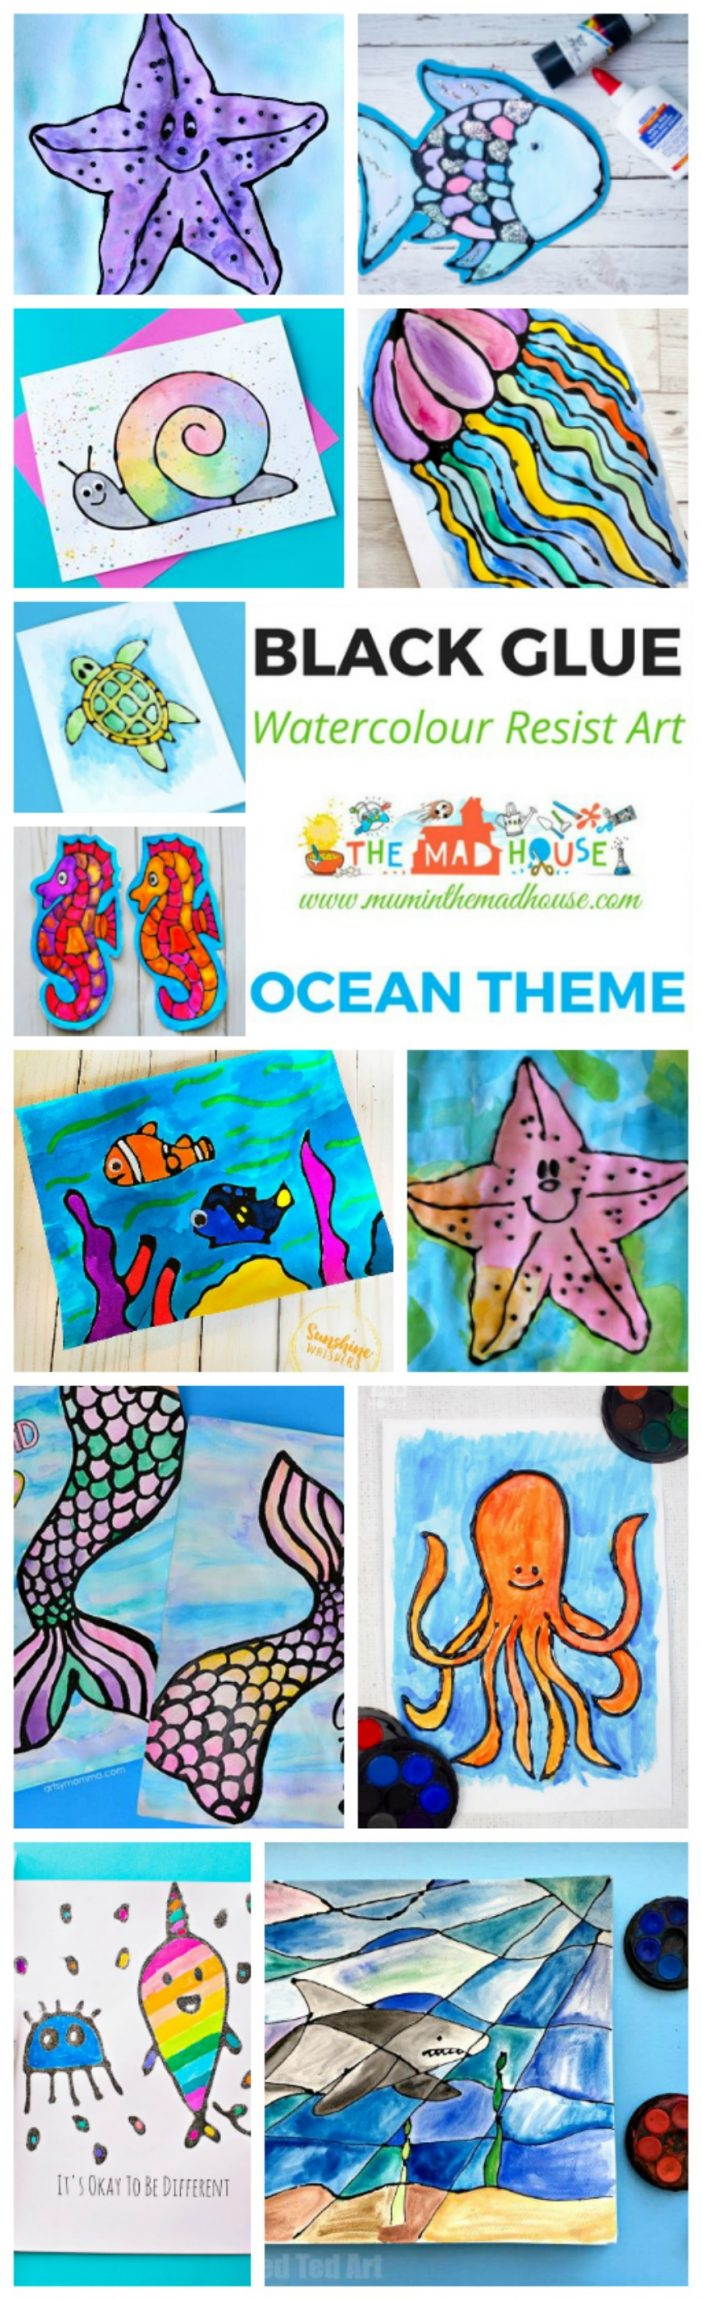 The complete under the sea watercolour glue resist Roundup. Yes, Ocean Watercolour Glue Resist Art Ideas many with free printables to make it e